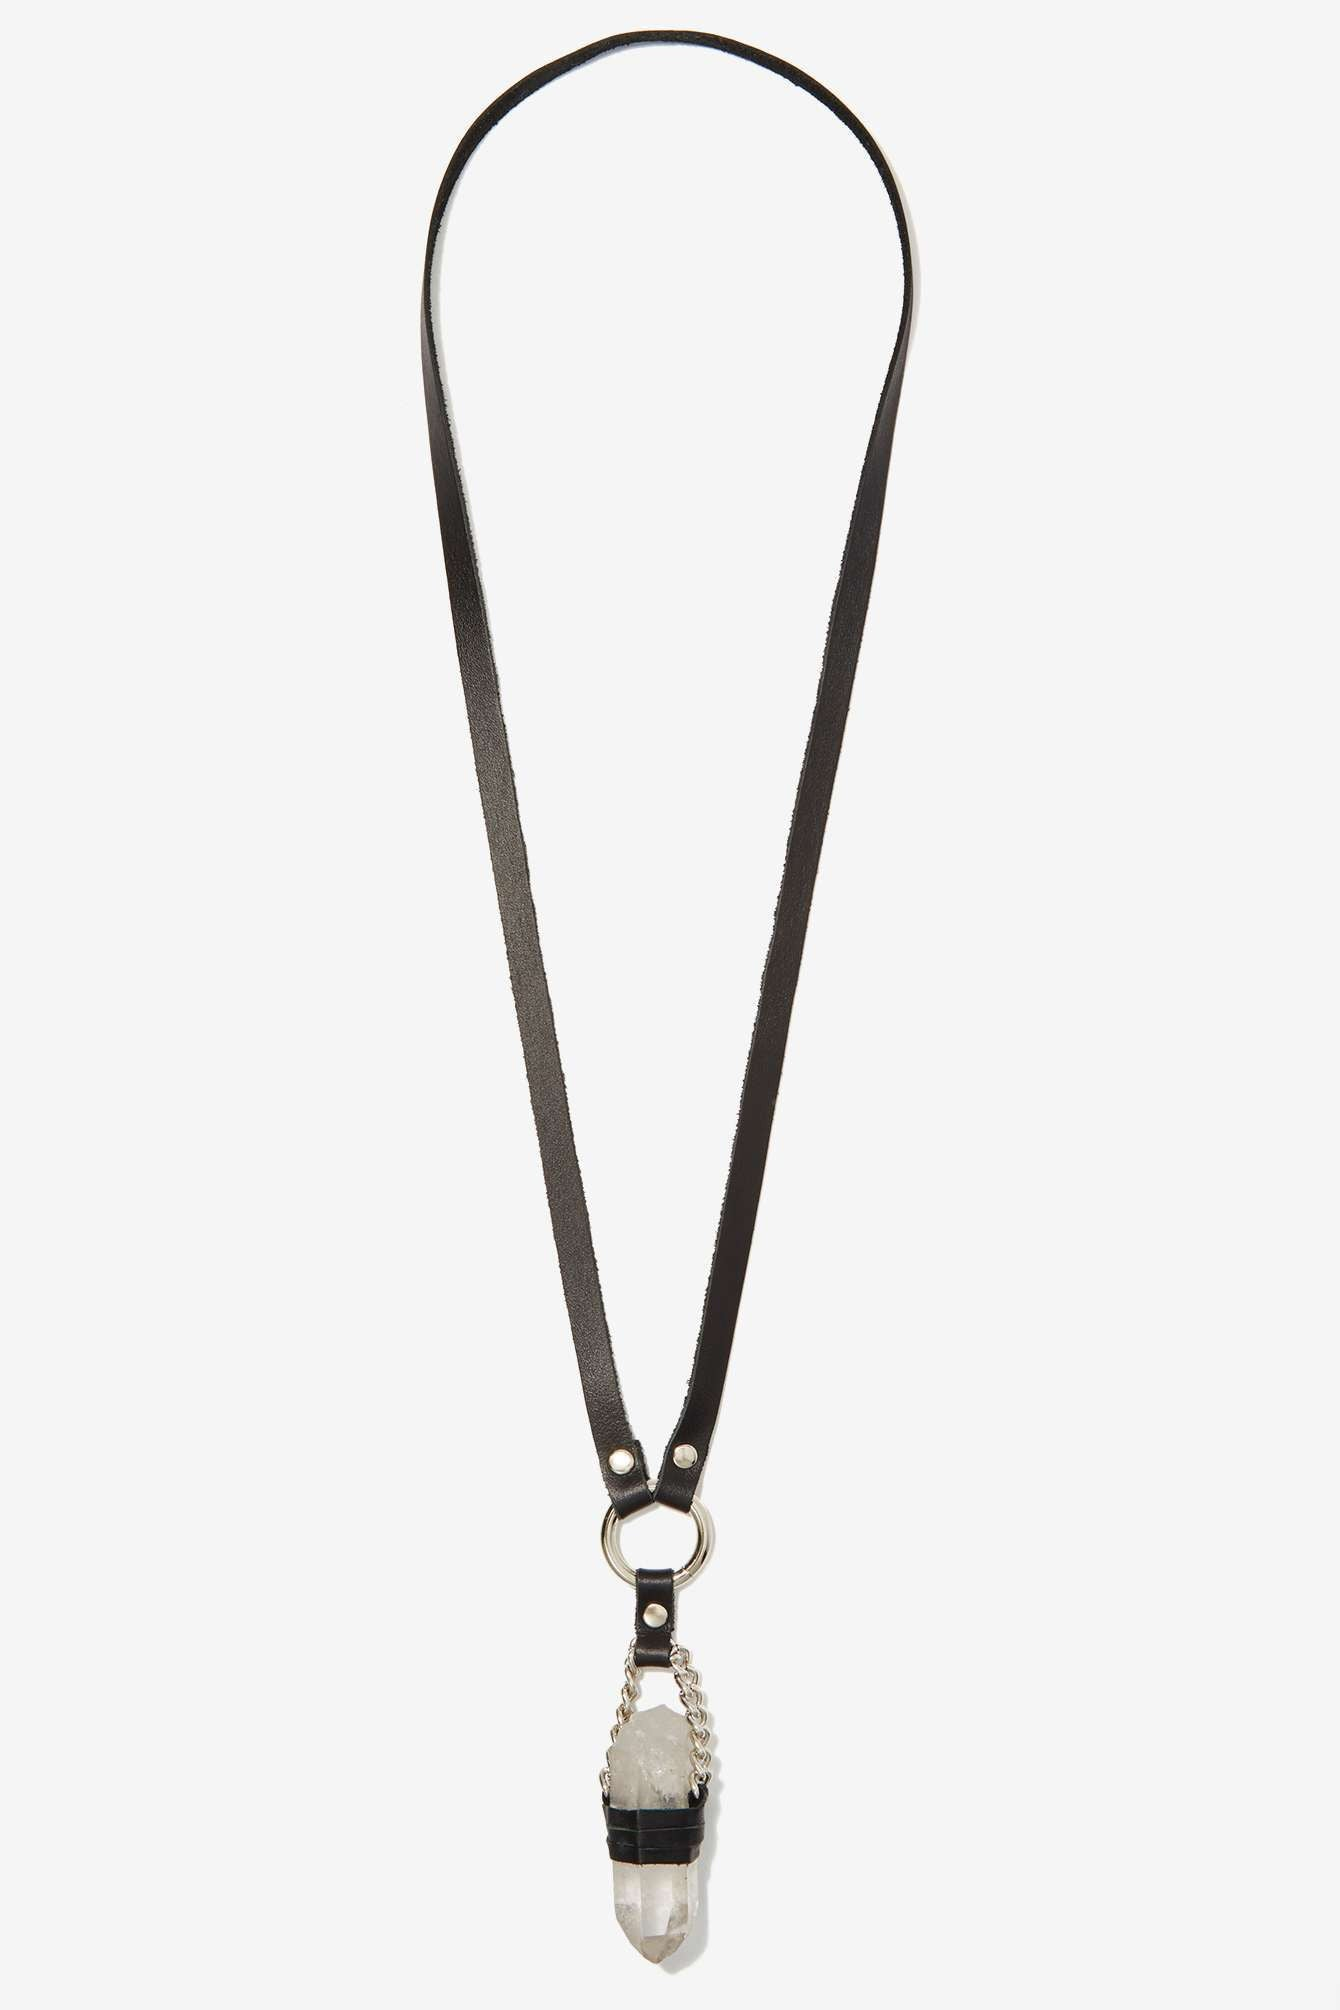 Chain Game Deity Necklace - JAKIMAC  - 5